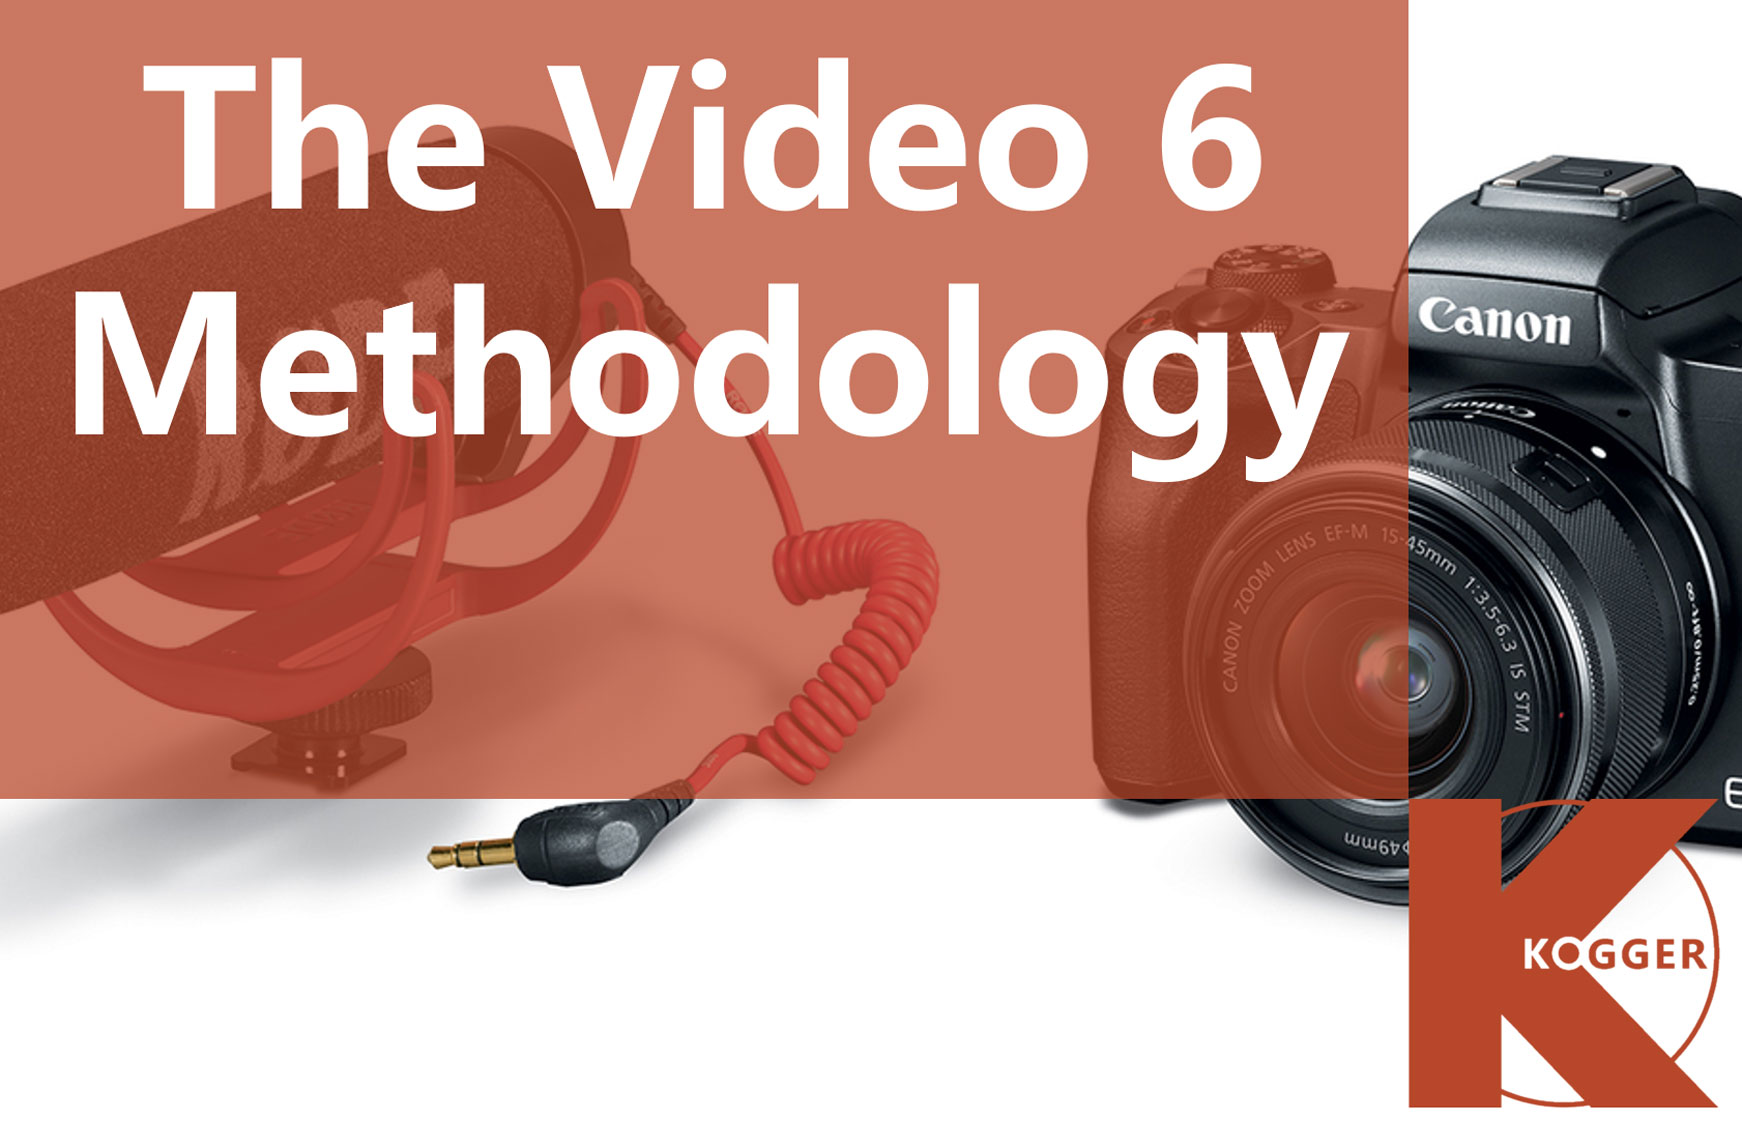 KOGGER_The Video 6 Methodology